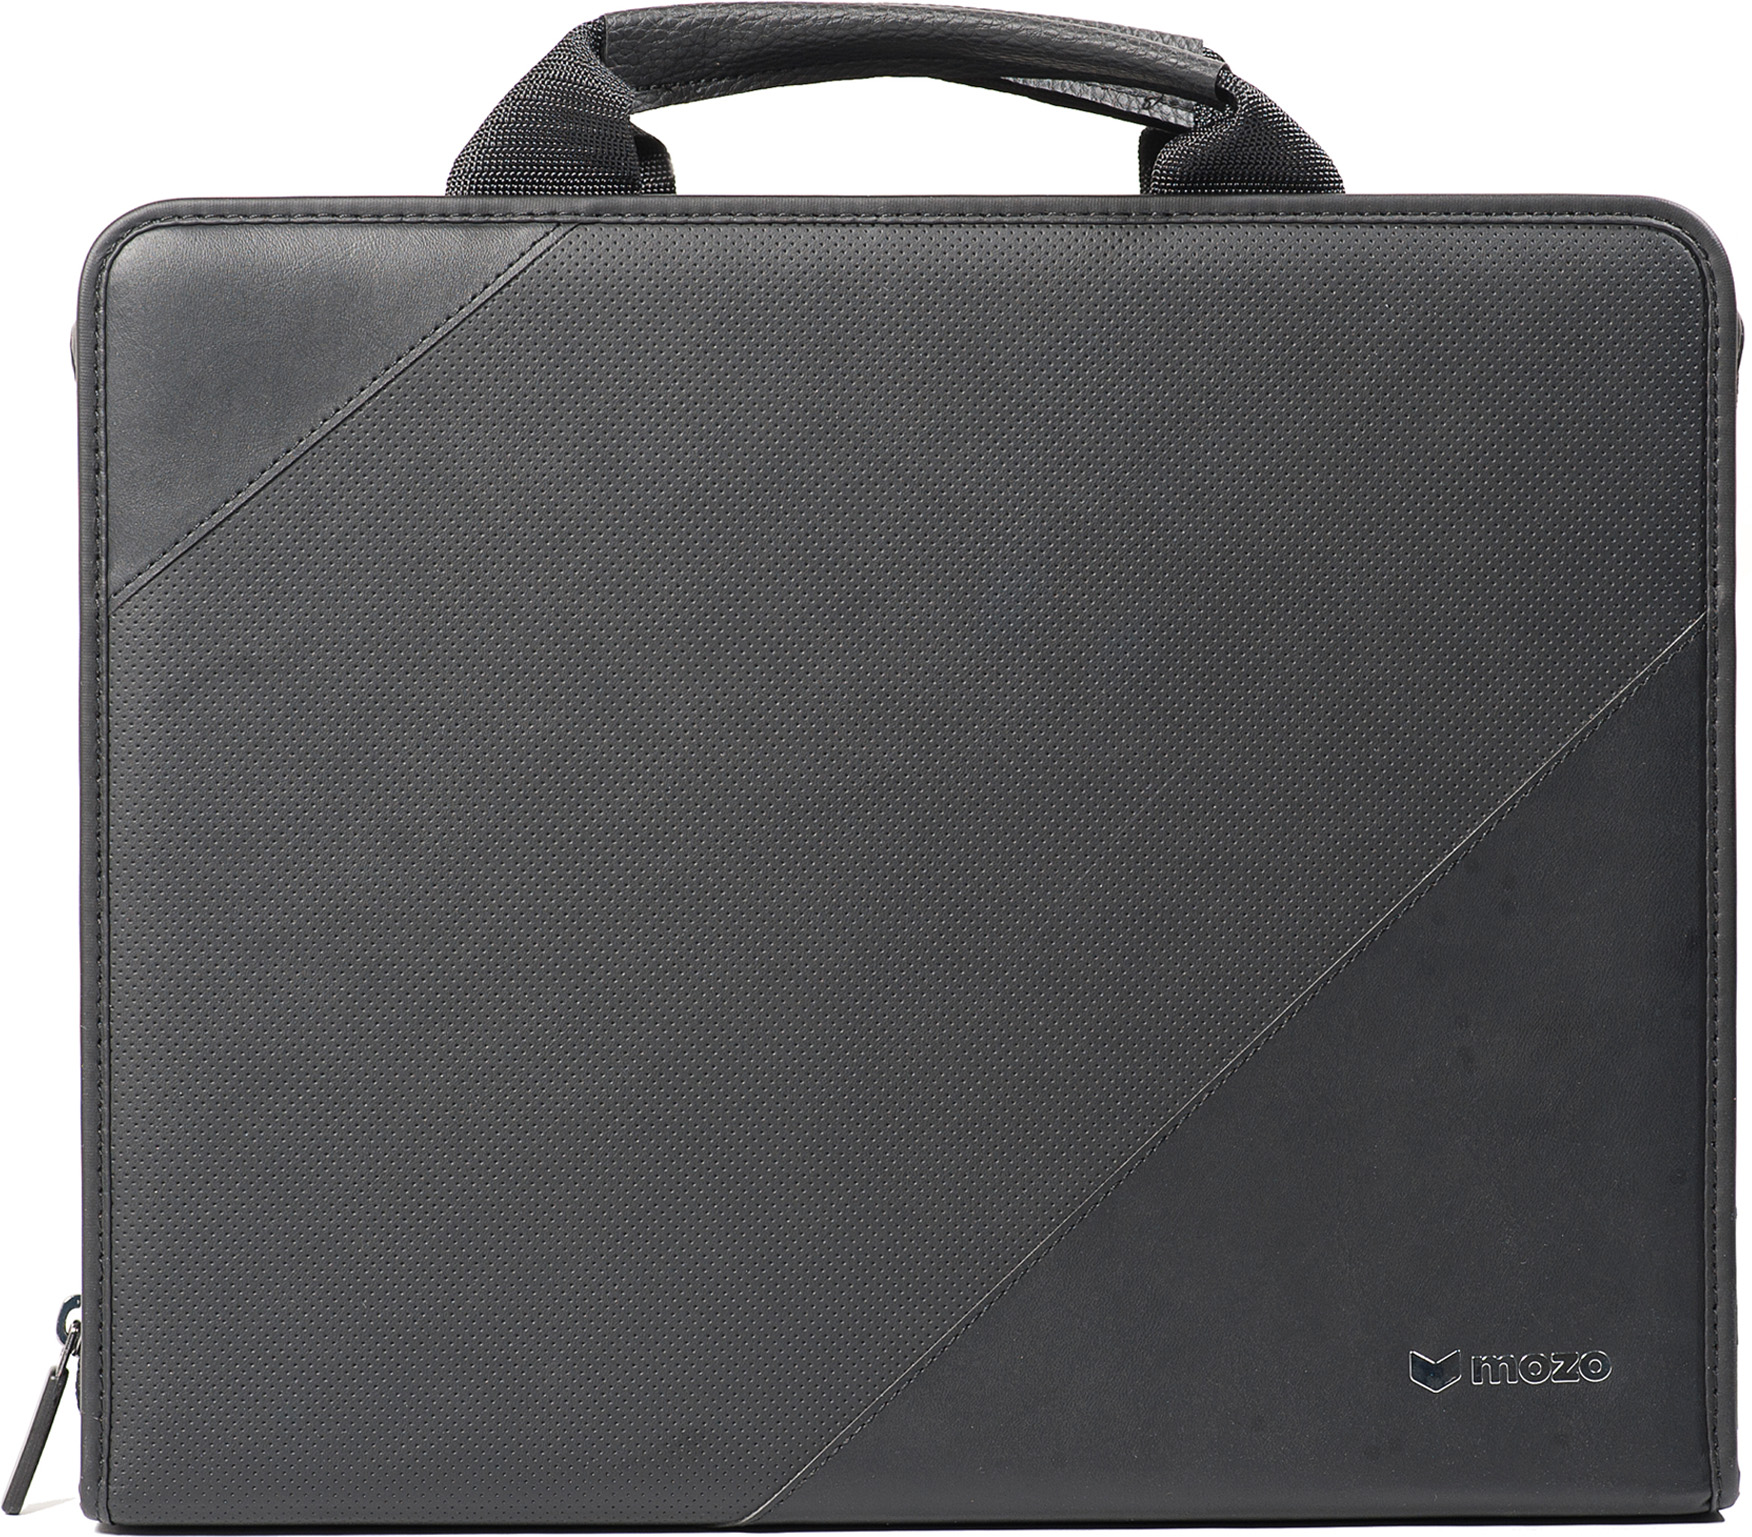 Mozo Golf Organizer (Black)